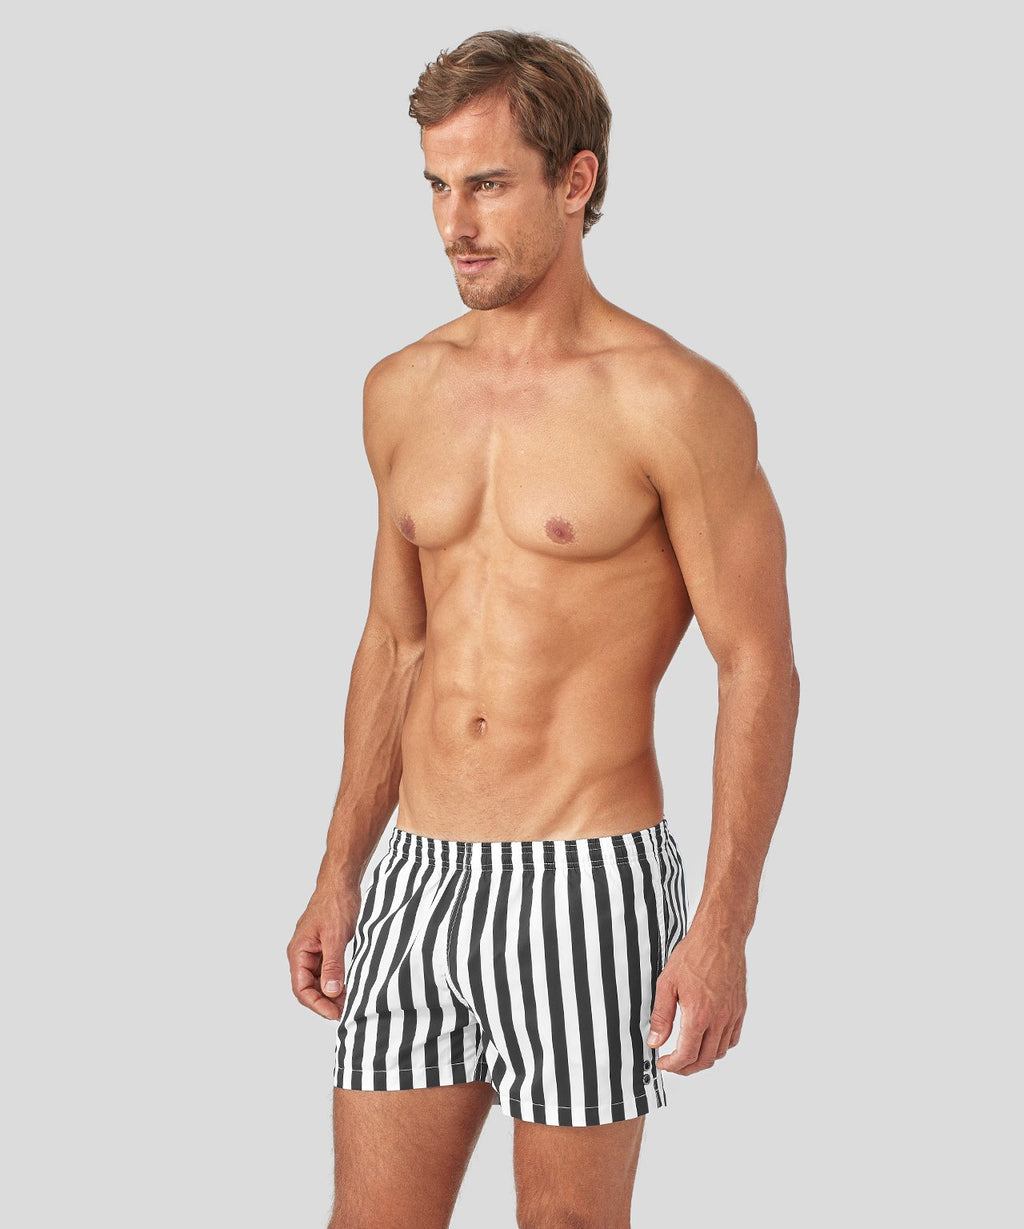 Ron-Dorff-Swim-Shorts-Vertical-Stripes-Black/White